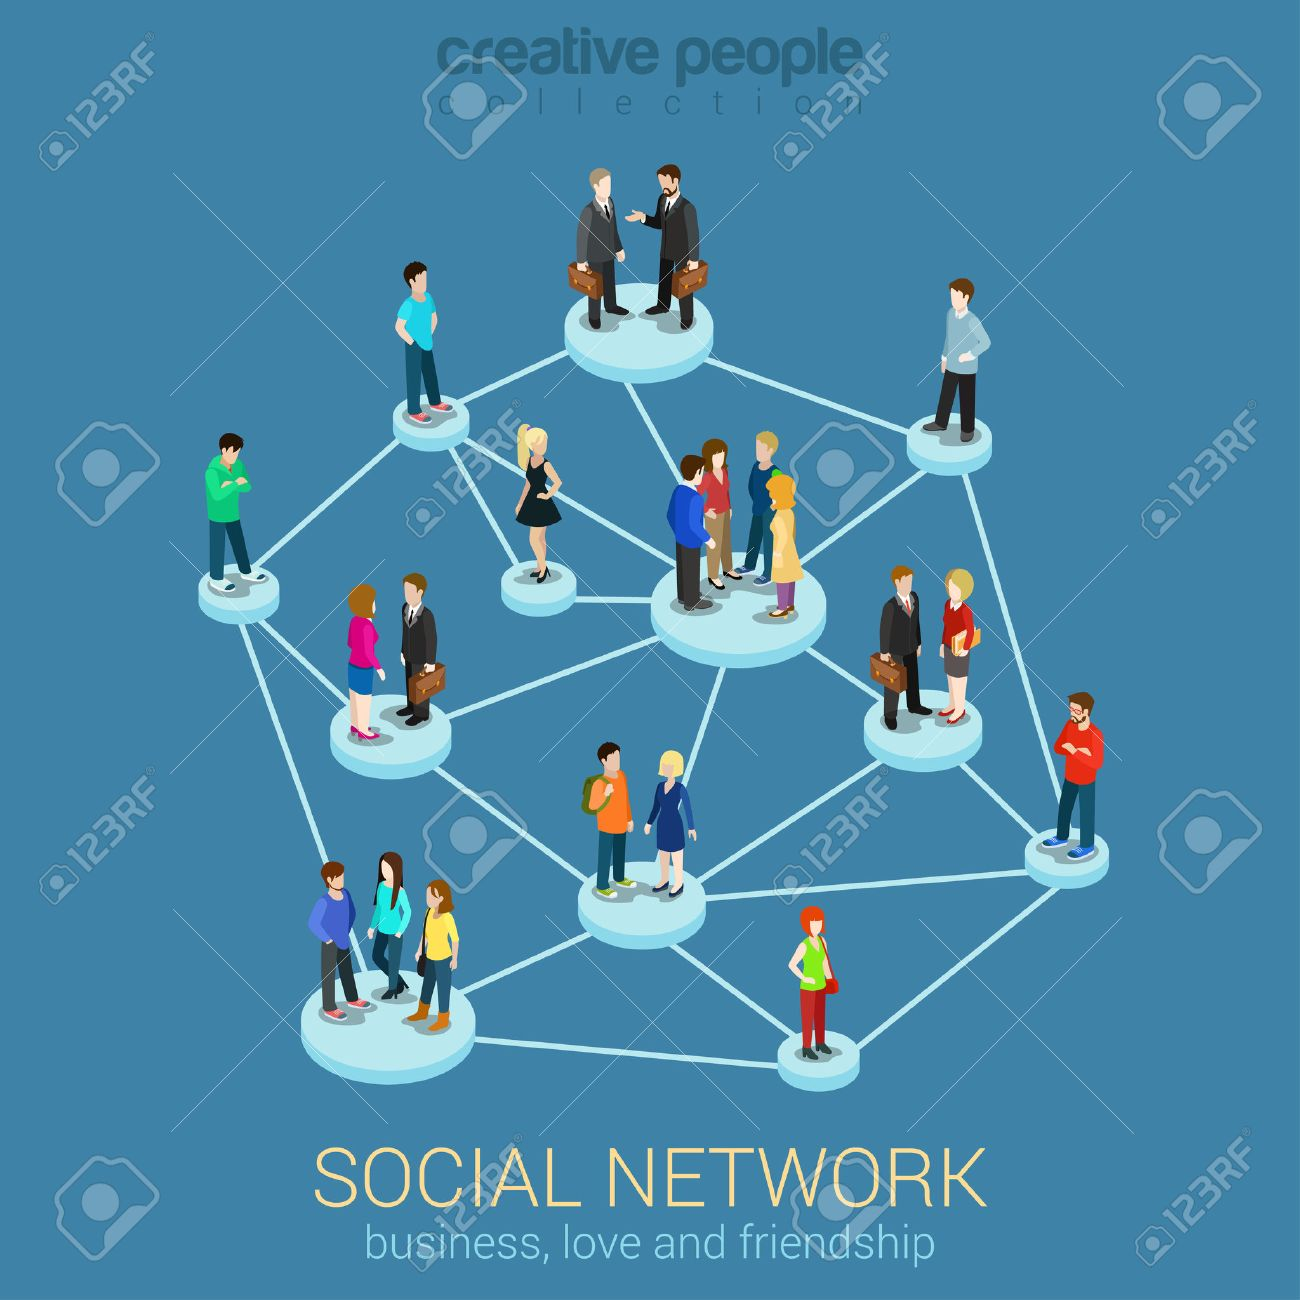 Social network media global people communication information sharing flat 3d web isometric infographic concept vector. Pedestals connection business love friendship. Creative people collection. Stock Vector - 48579045